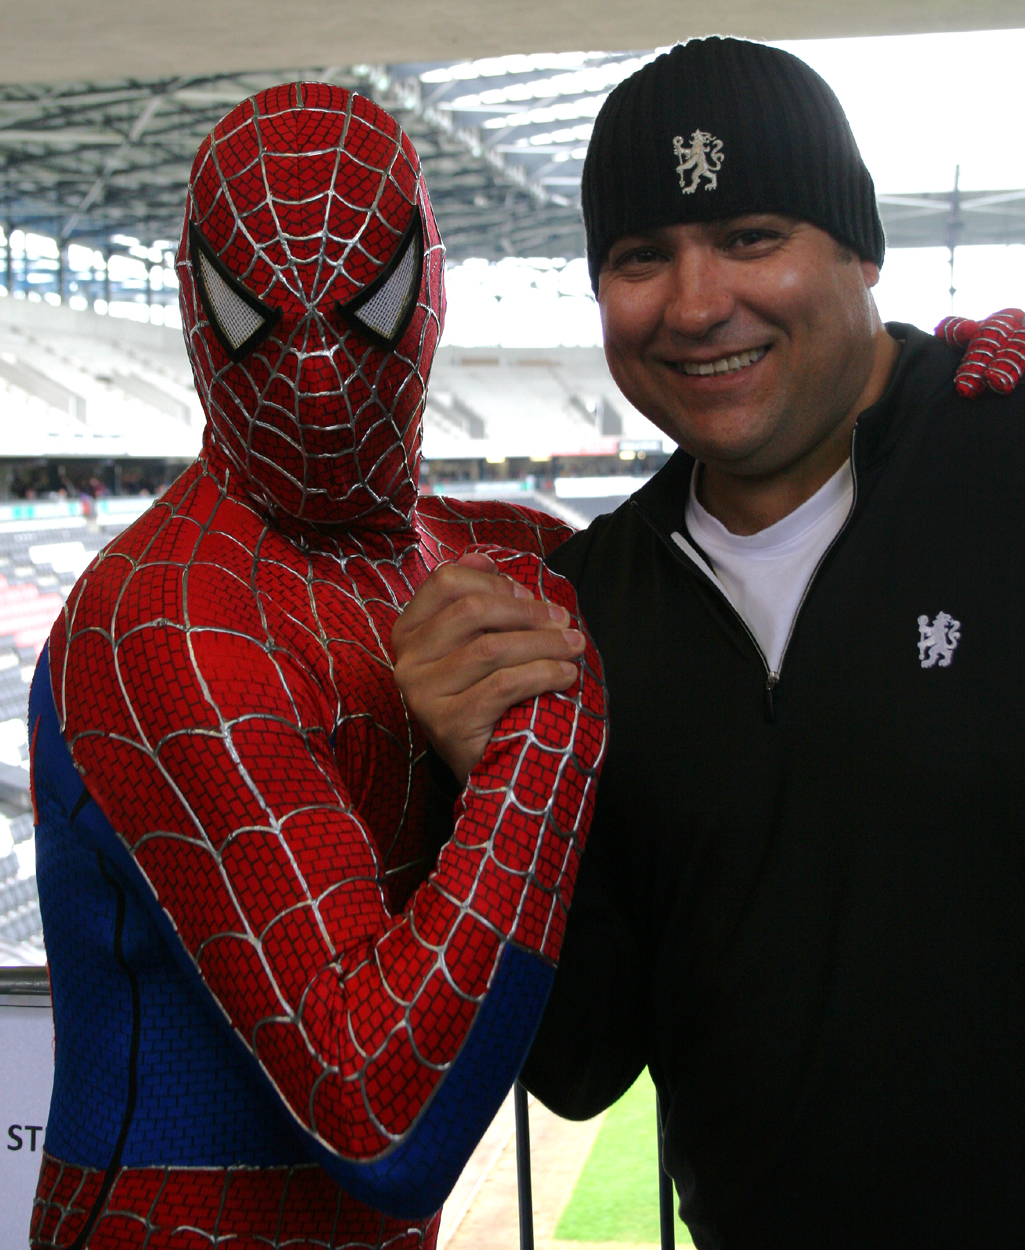 Spiderman & Dave Sherwood